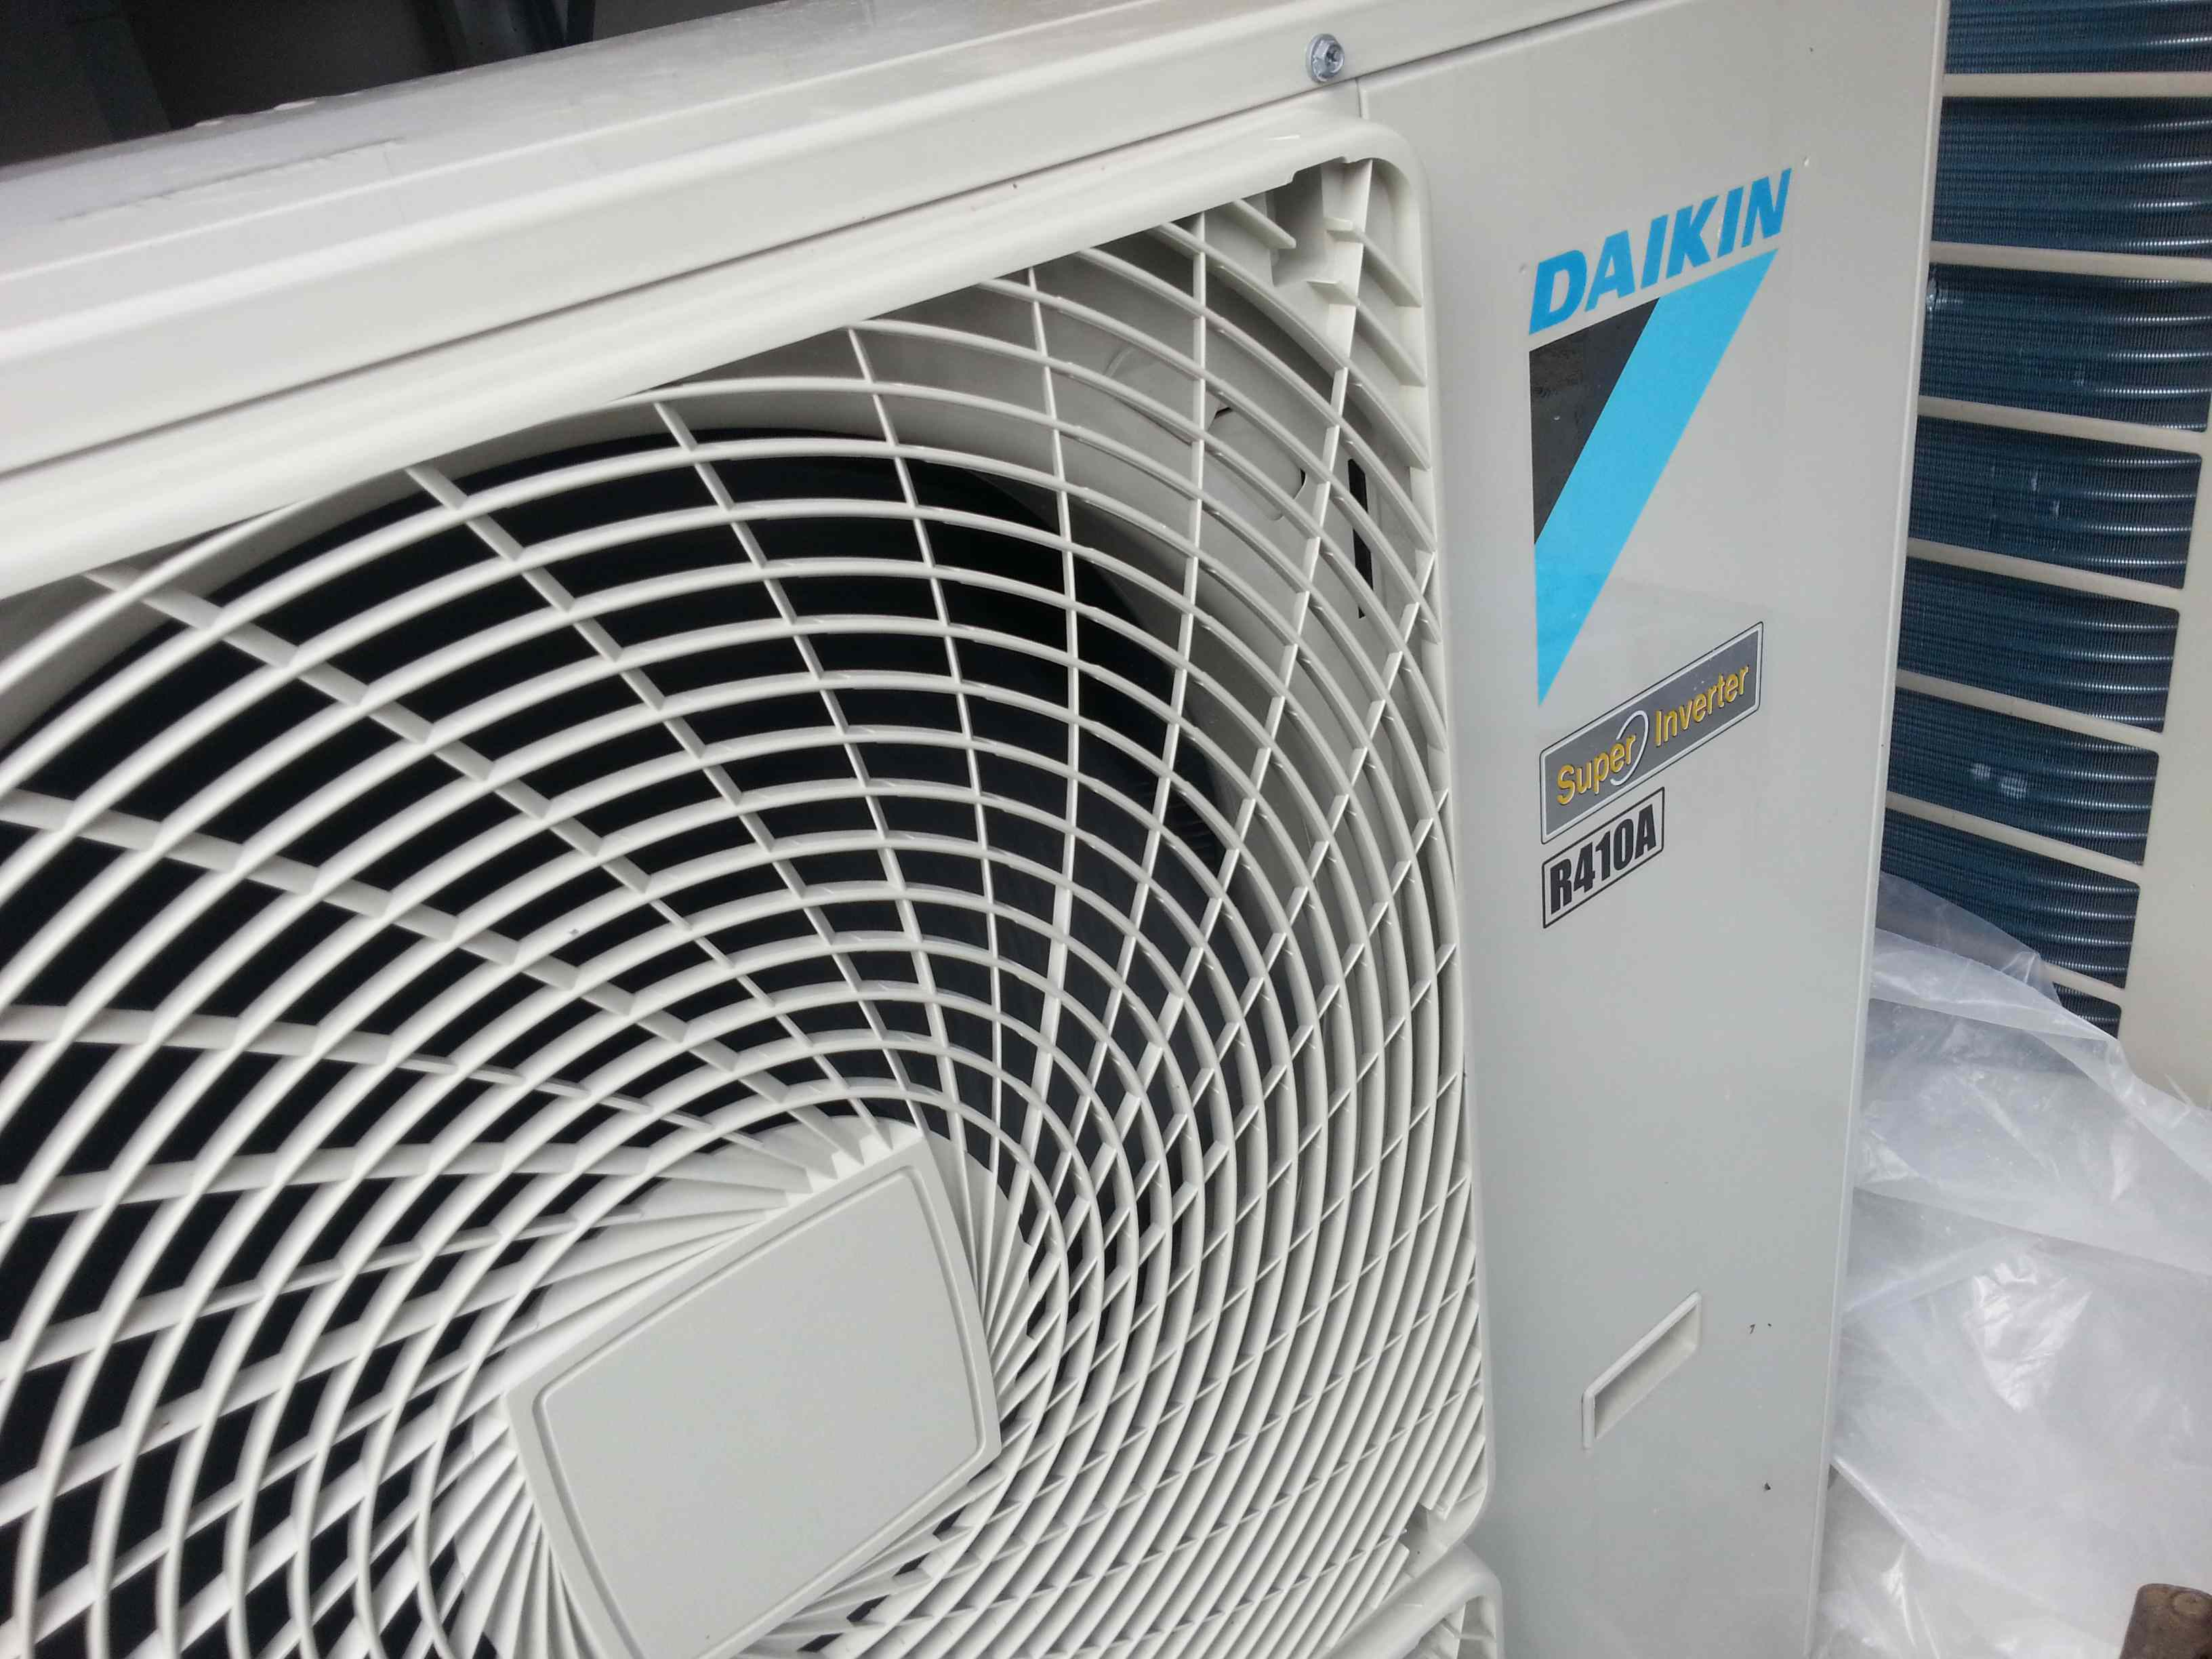 #2088AB Split Air Conditioner System Installation KBE Highest Rated 14156 Split Air Conditioner Installation img with 3264x2448 px on helpvideos.info - Air Conditioners, Air Coolers and more